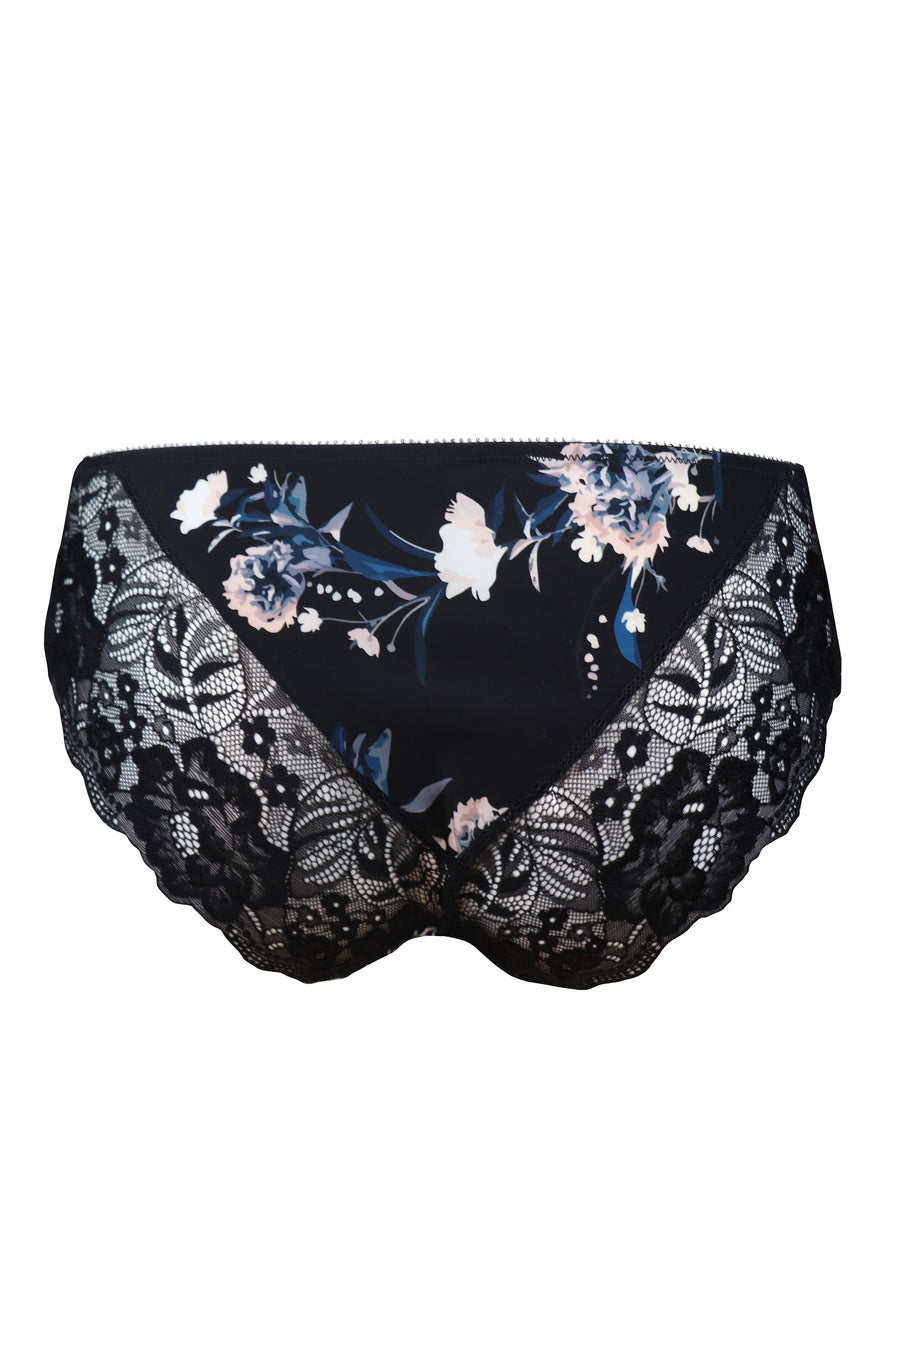 Pour Moi - Flamenco Brief Black Floral